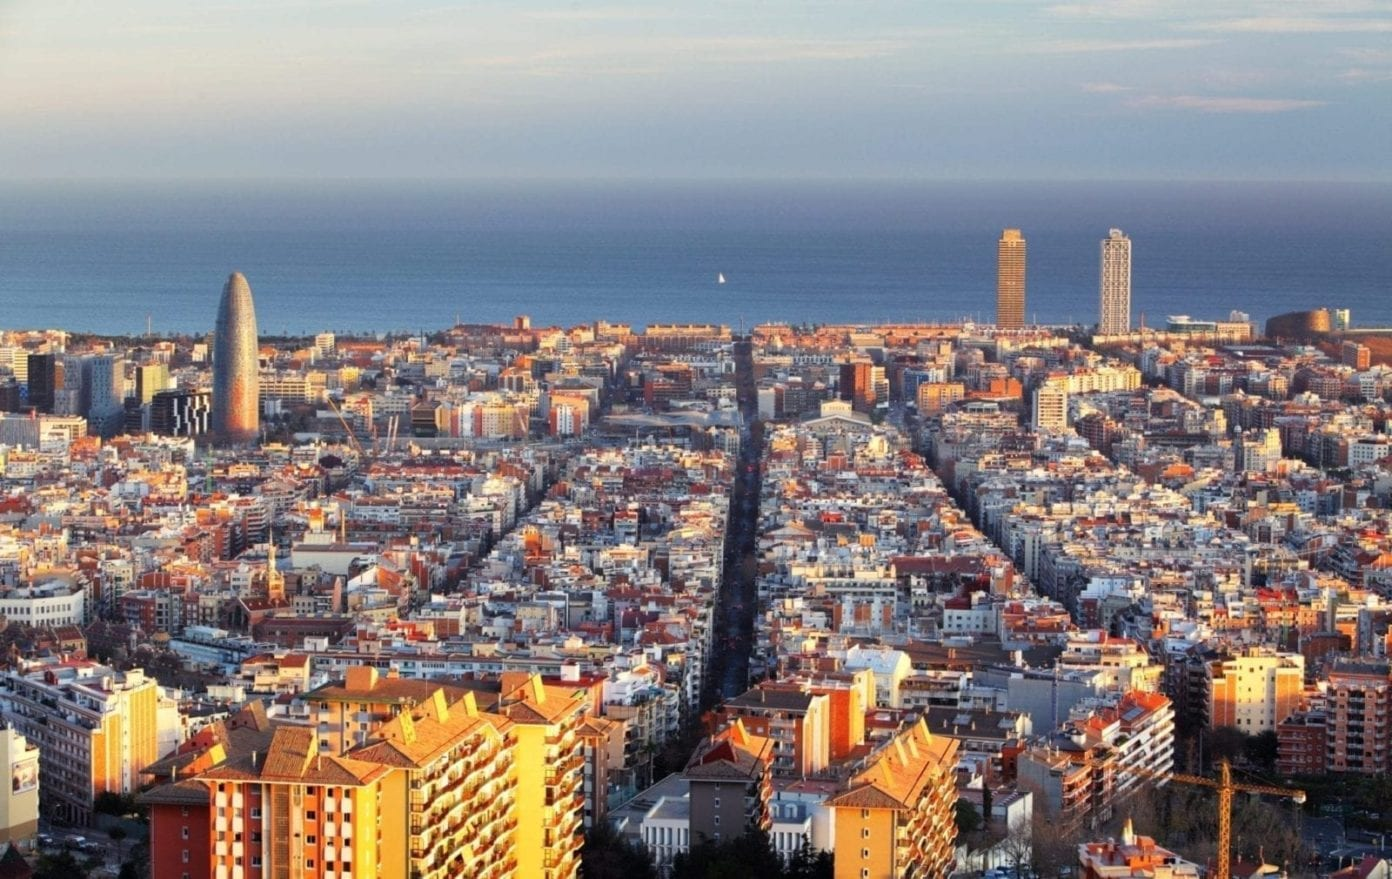 Barcelona City Council Orders the Stoppage of Private Building Projects